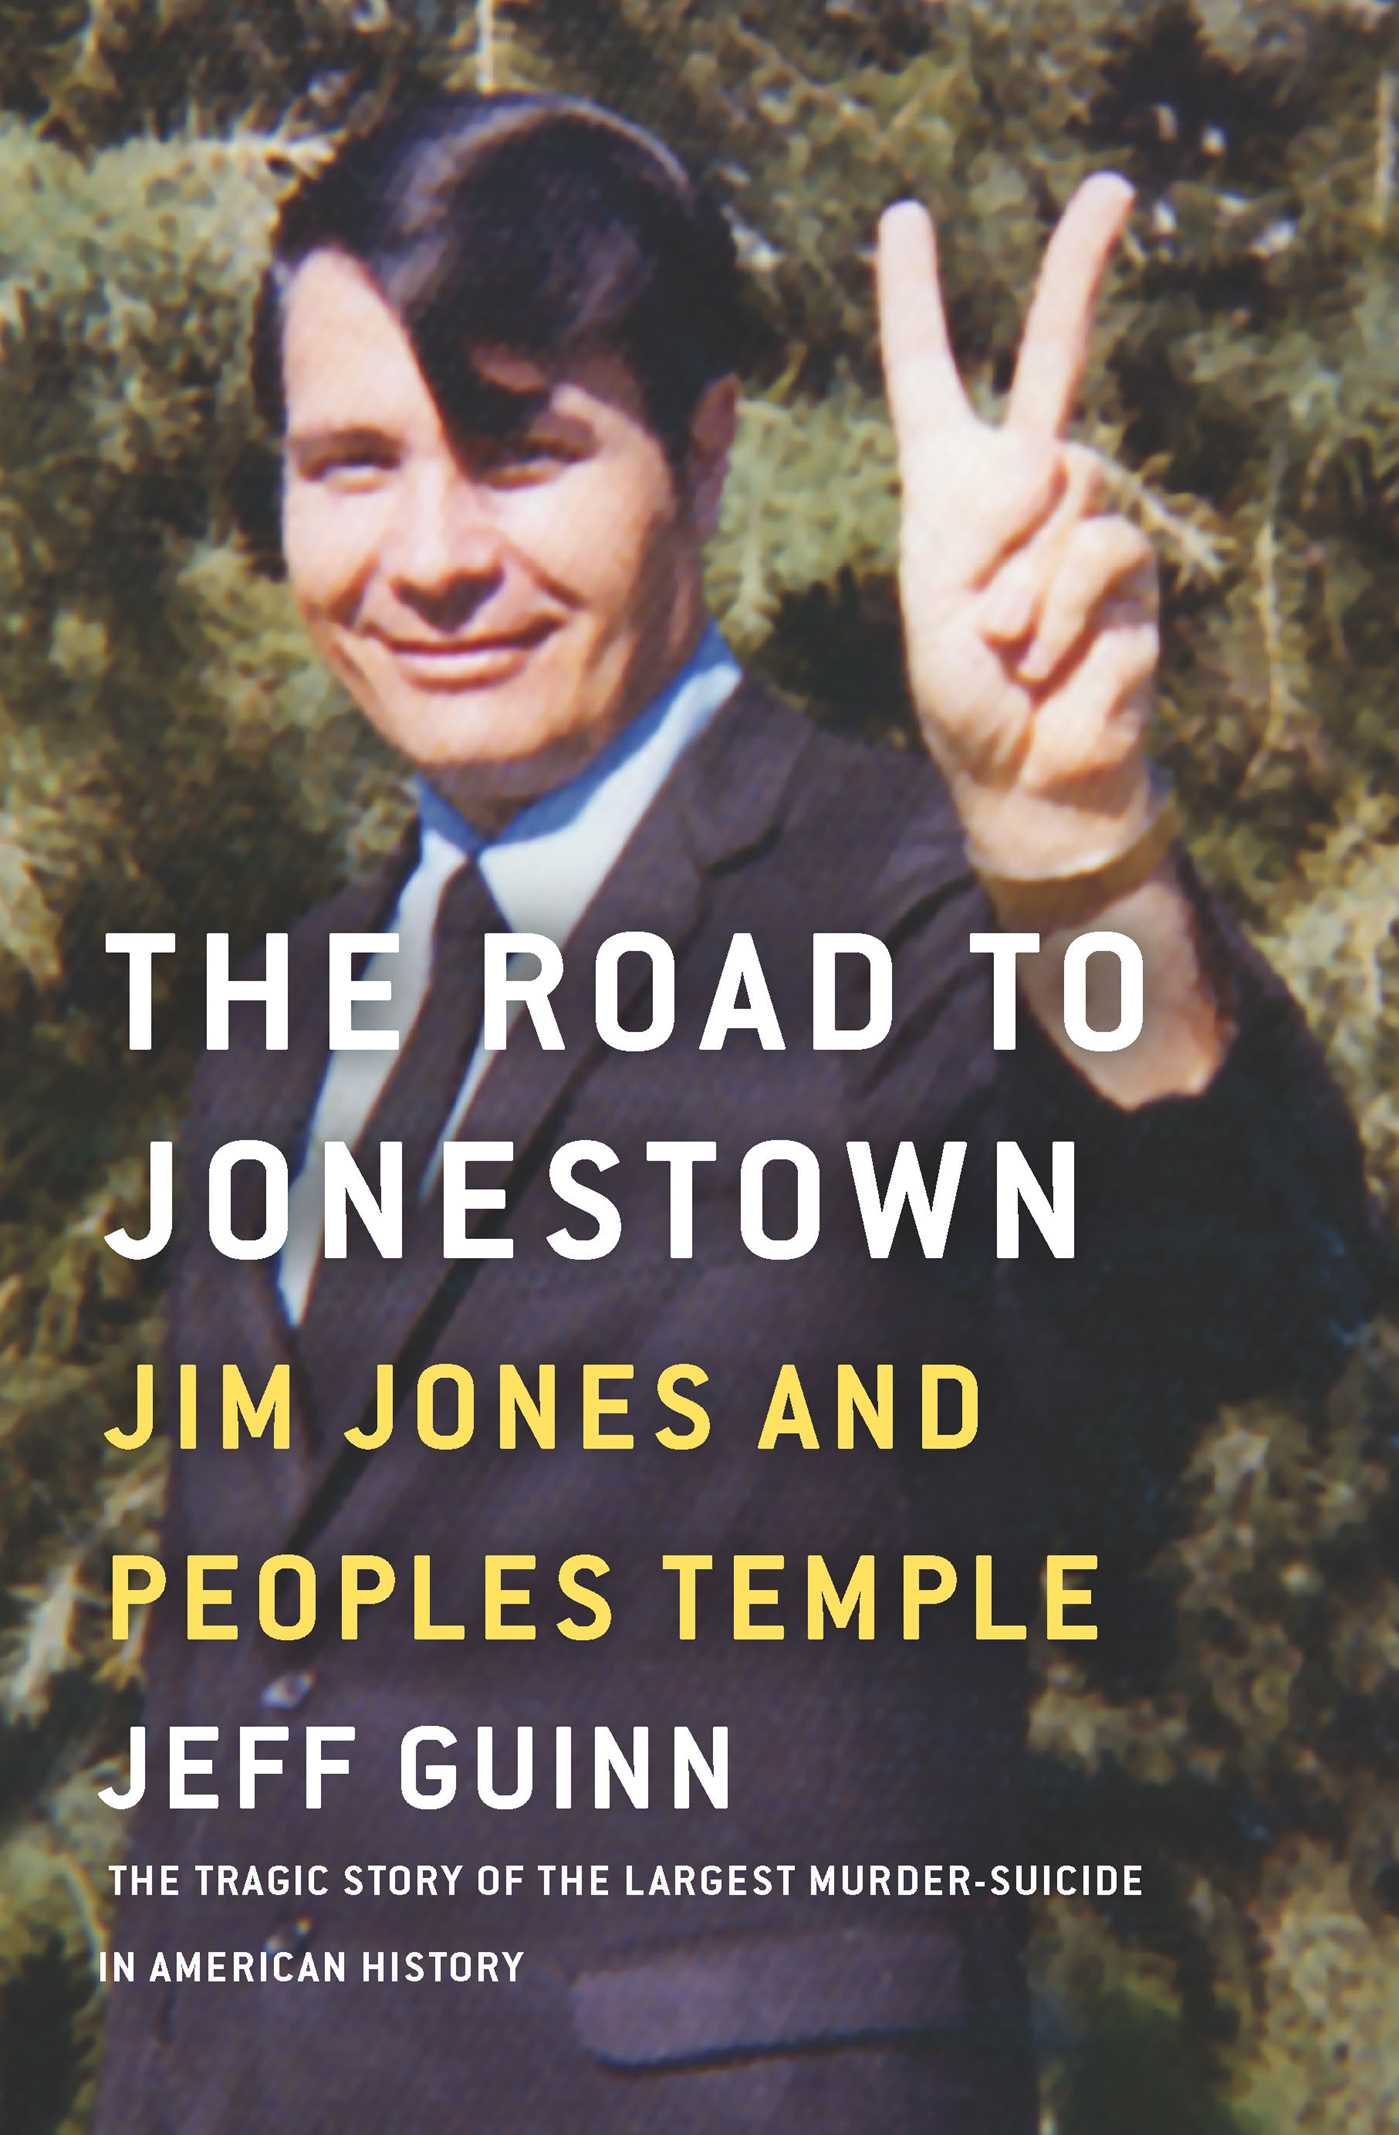 The road to jonestown 9781501175374 hr